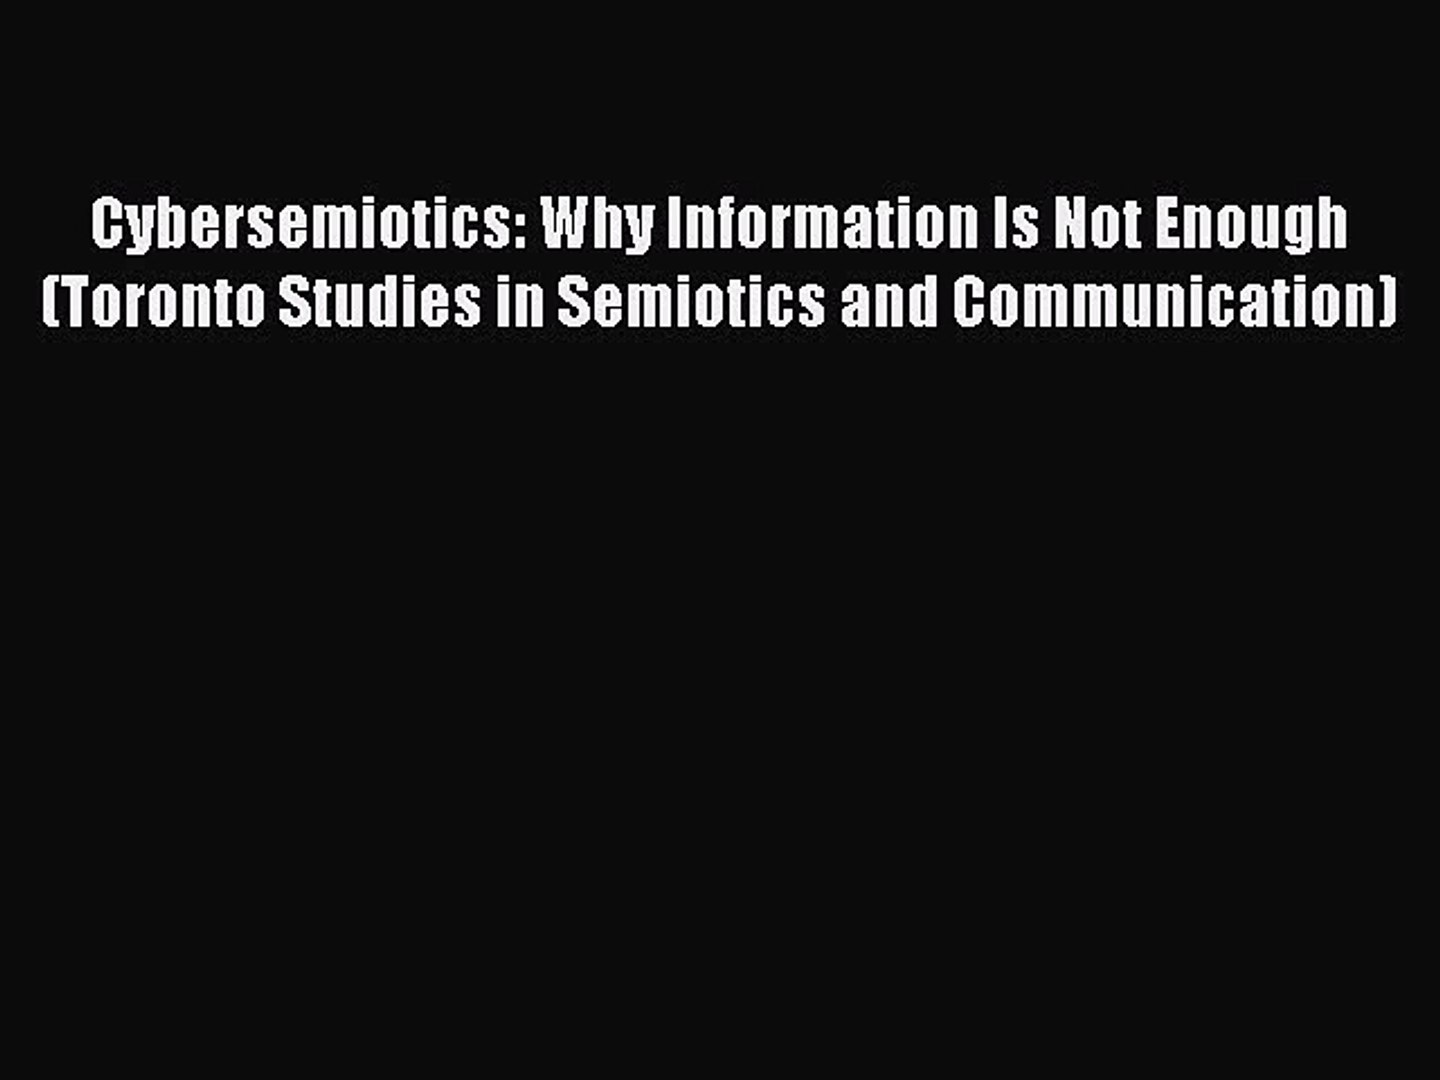 Cybersemiotics: Why Information Is Not Enough!